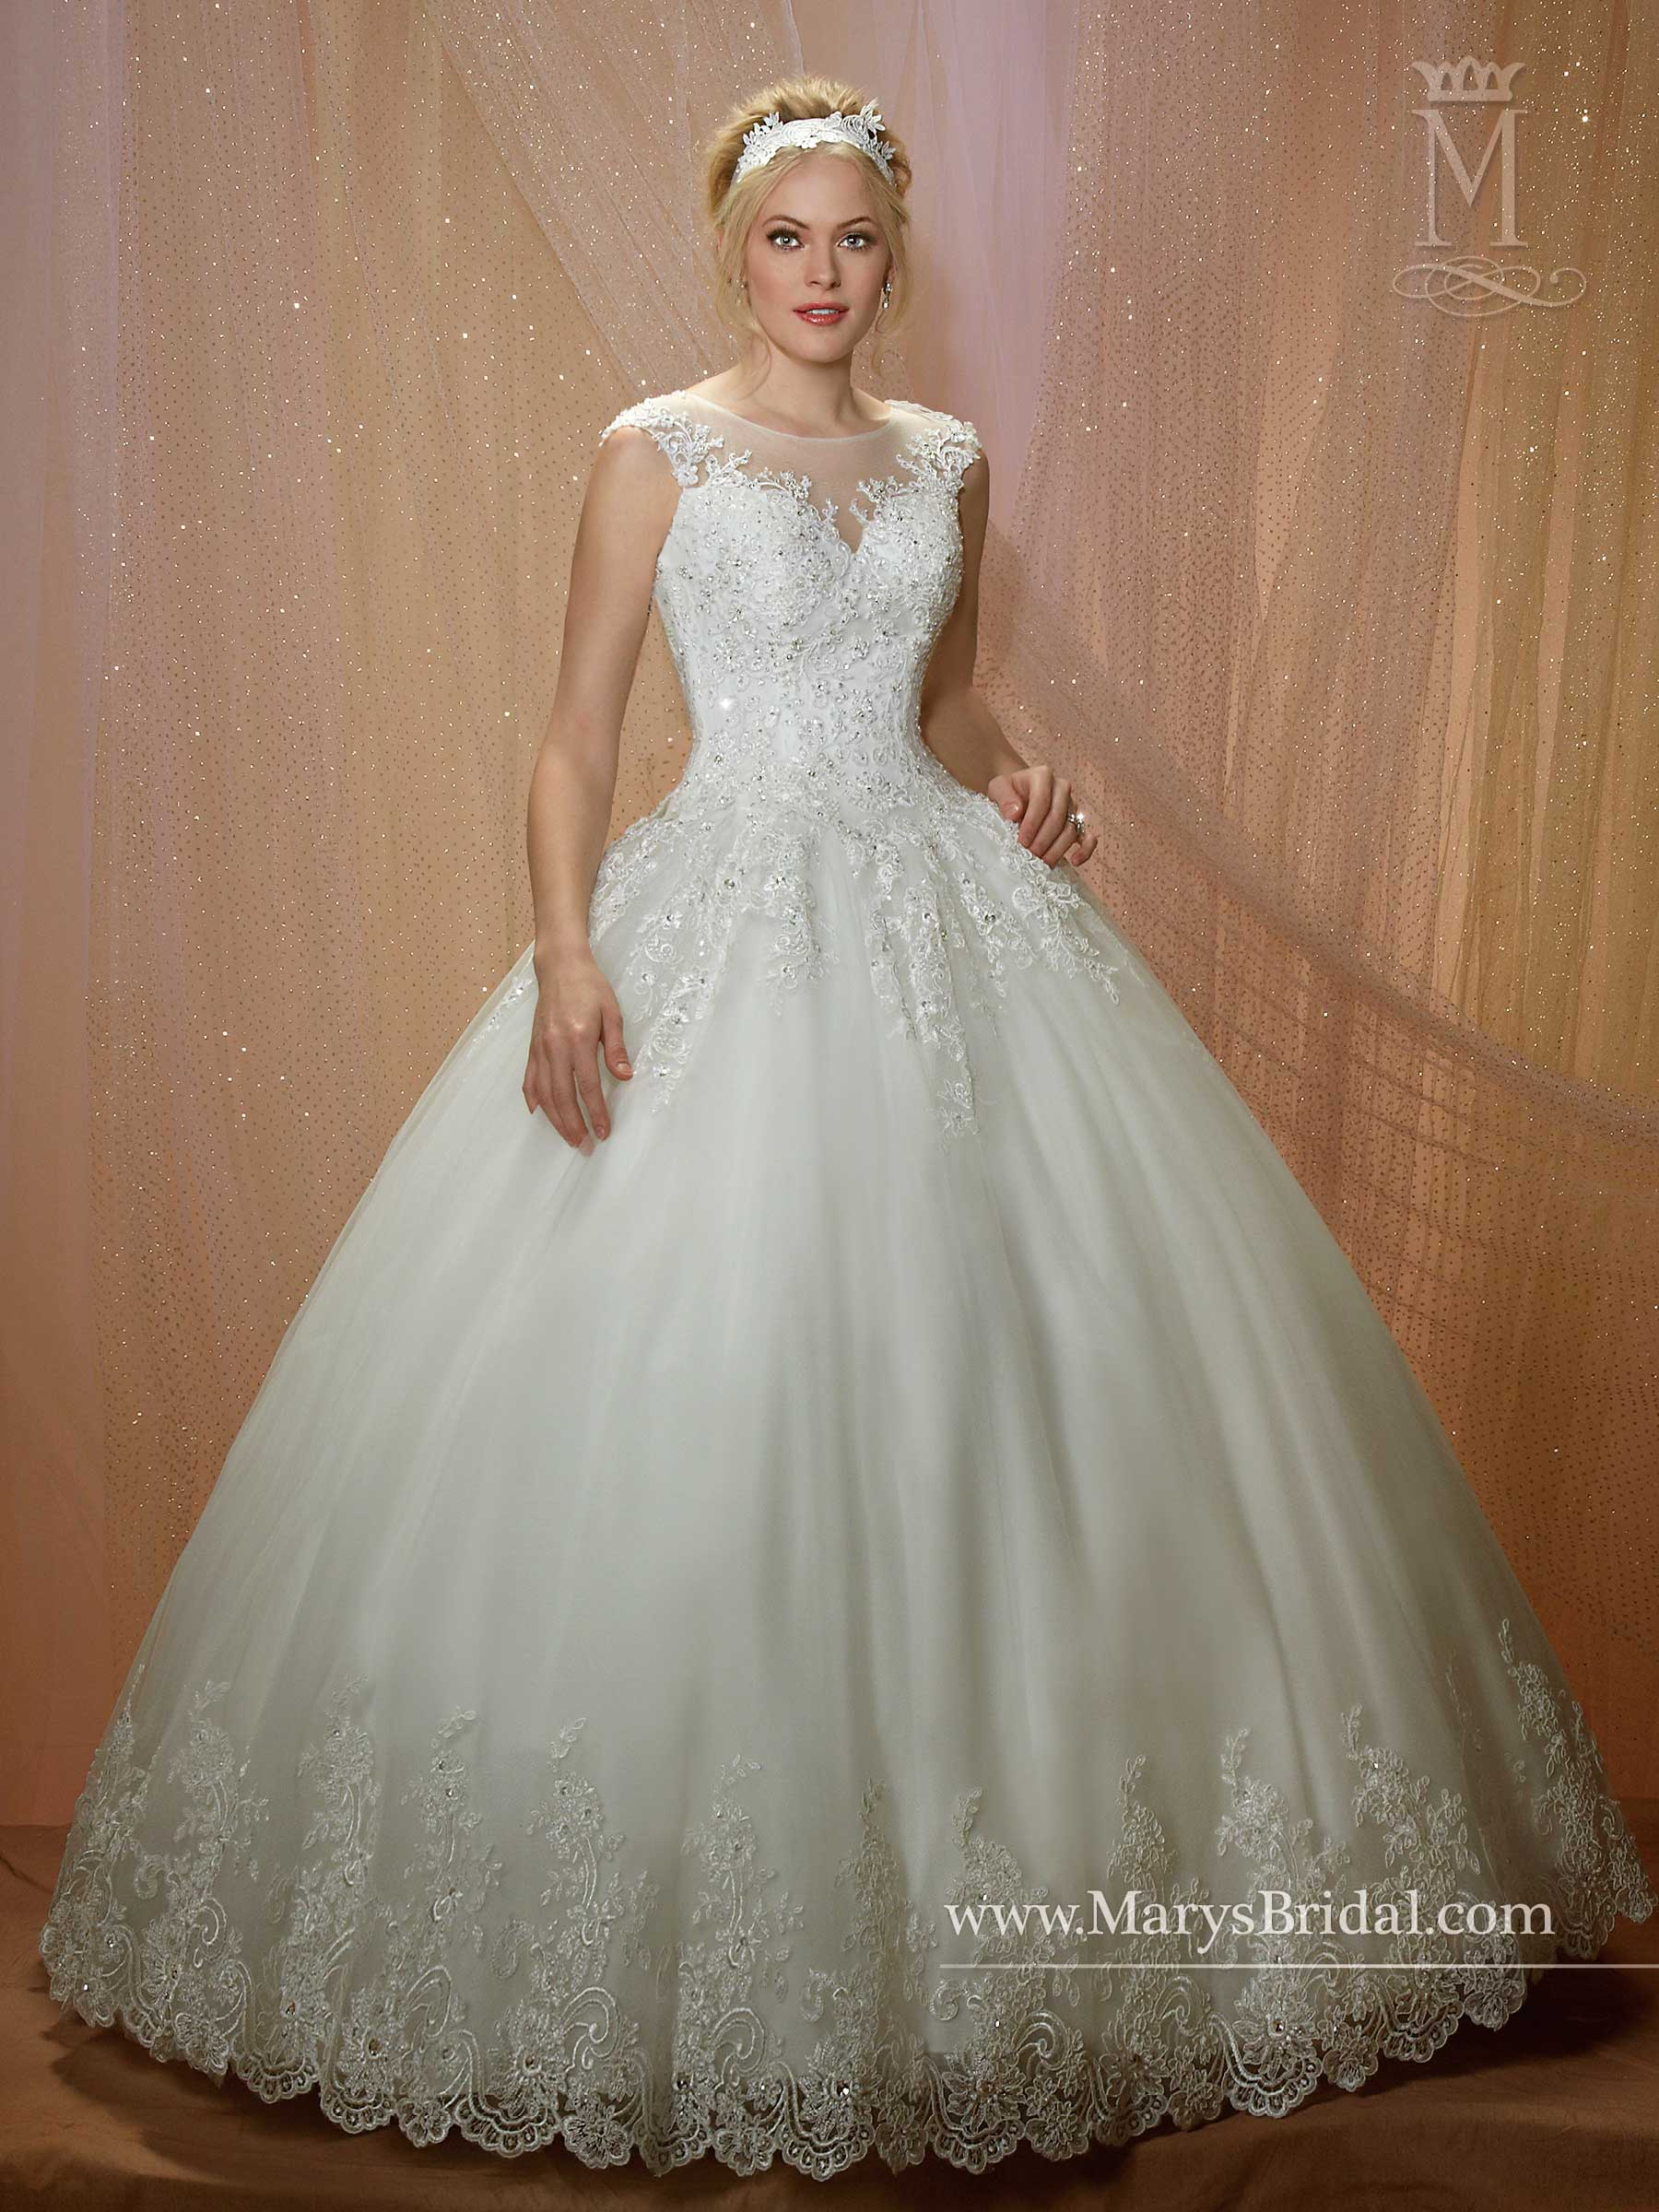 Couture Damour Bridal Dresses Style 6454 In Ivory Or